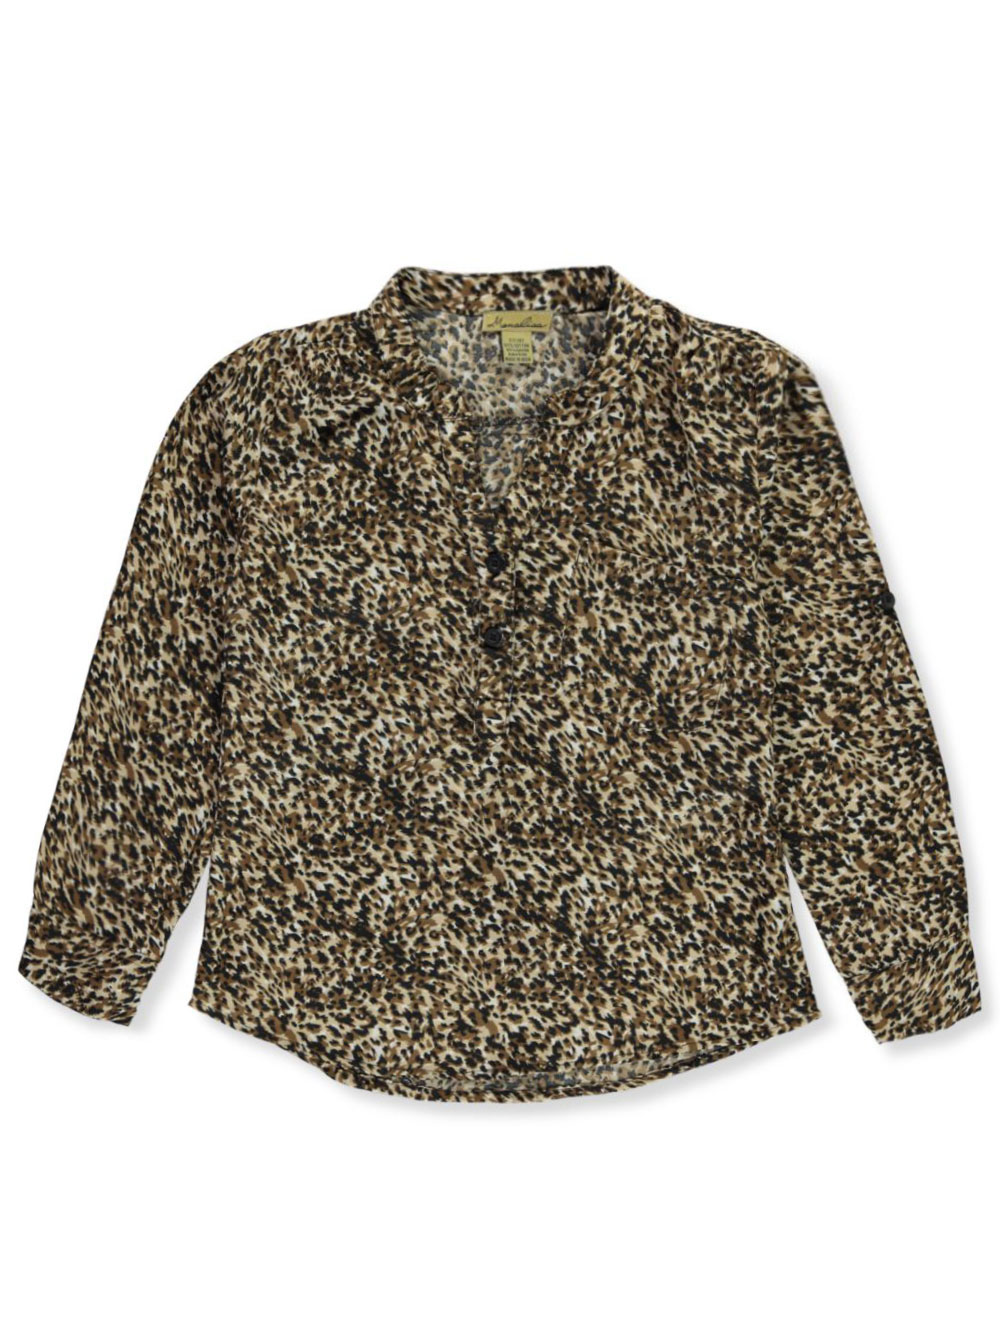 Mona Lisa Girls Button-Down Top